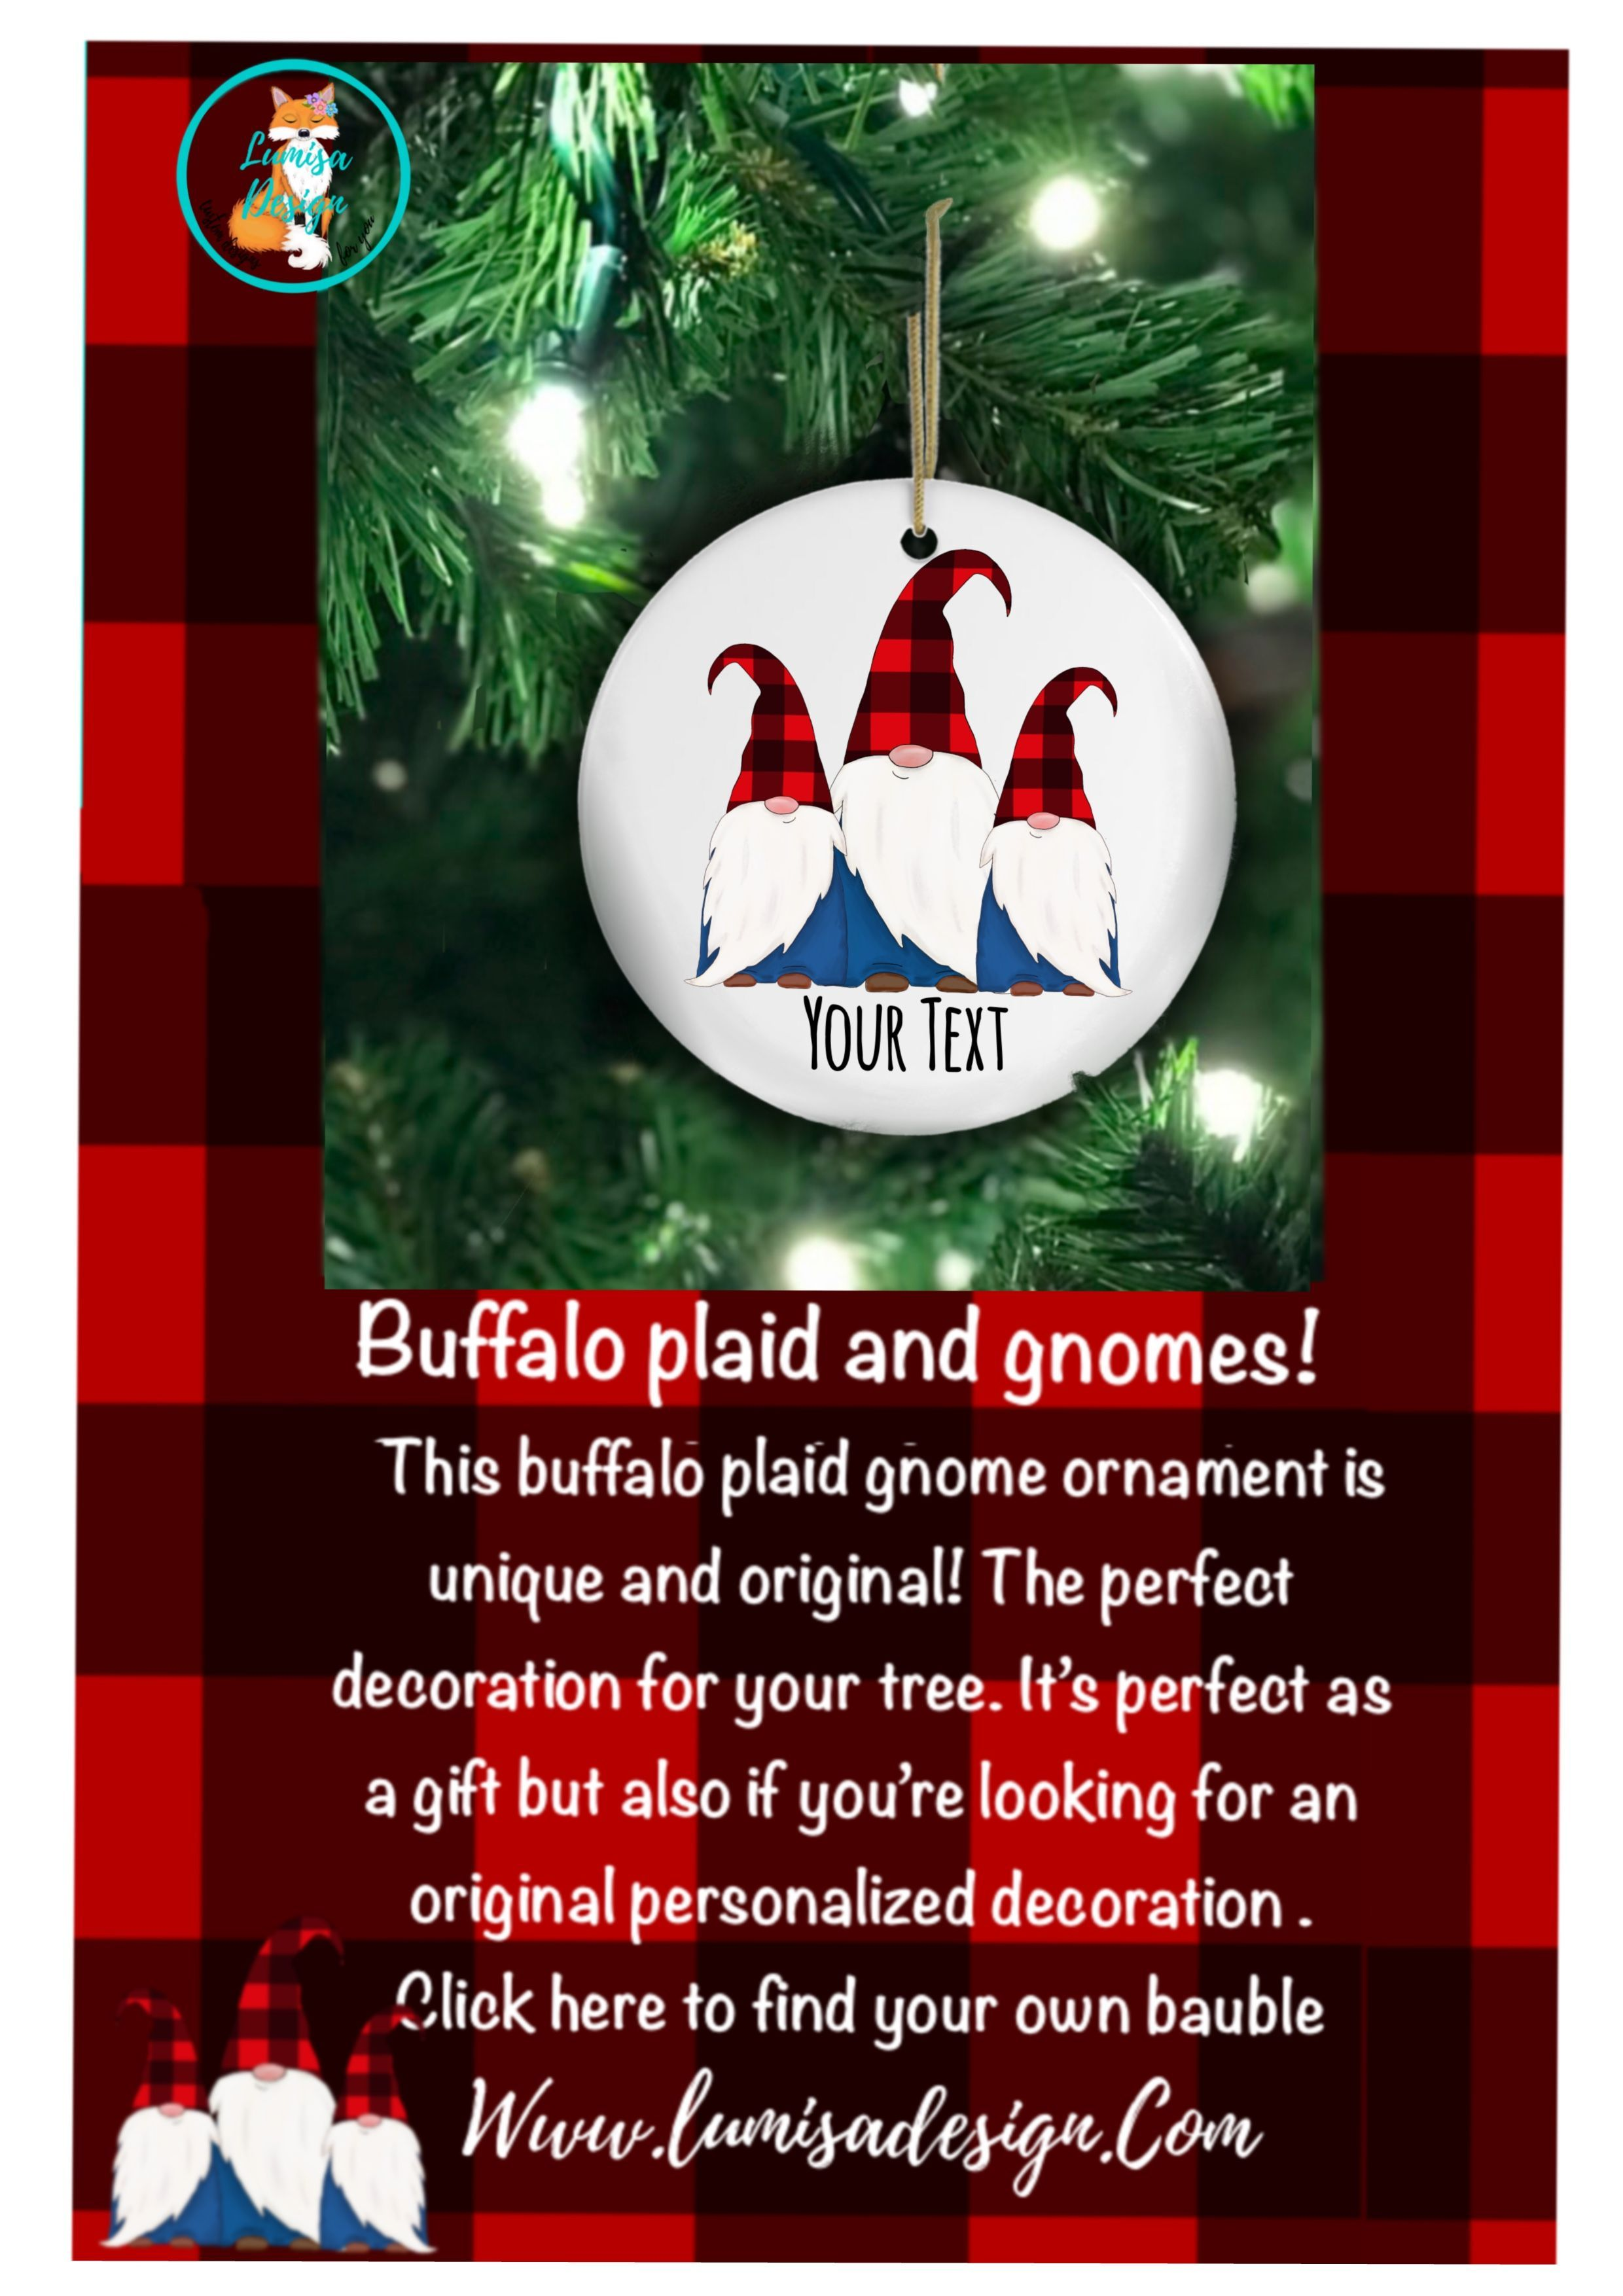 Decorate Your Tree This Year With This Adorable Personalized Buffalo Plaid Gnome Ornament You Can P Personalized Christmas Ornaments Gnome Ornaments Ornaments